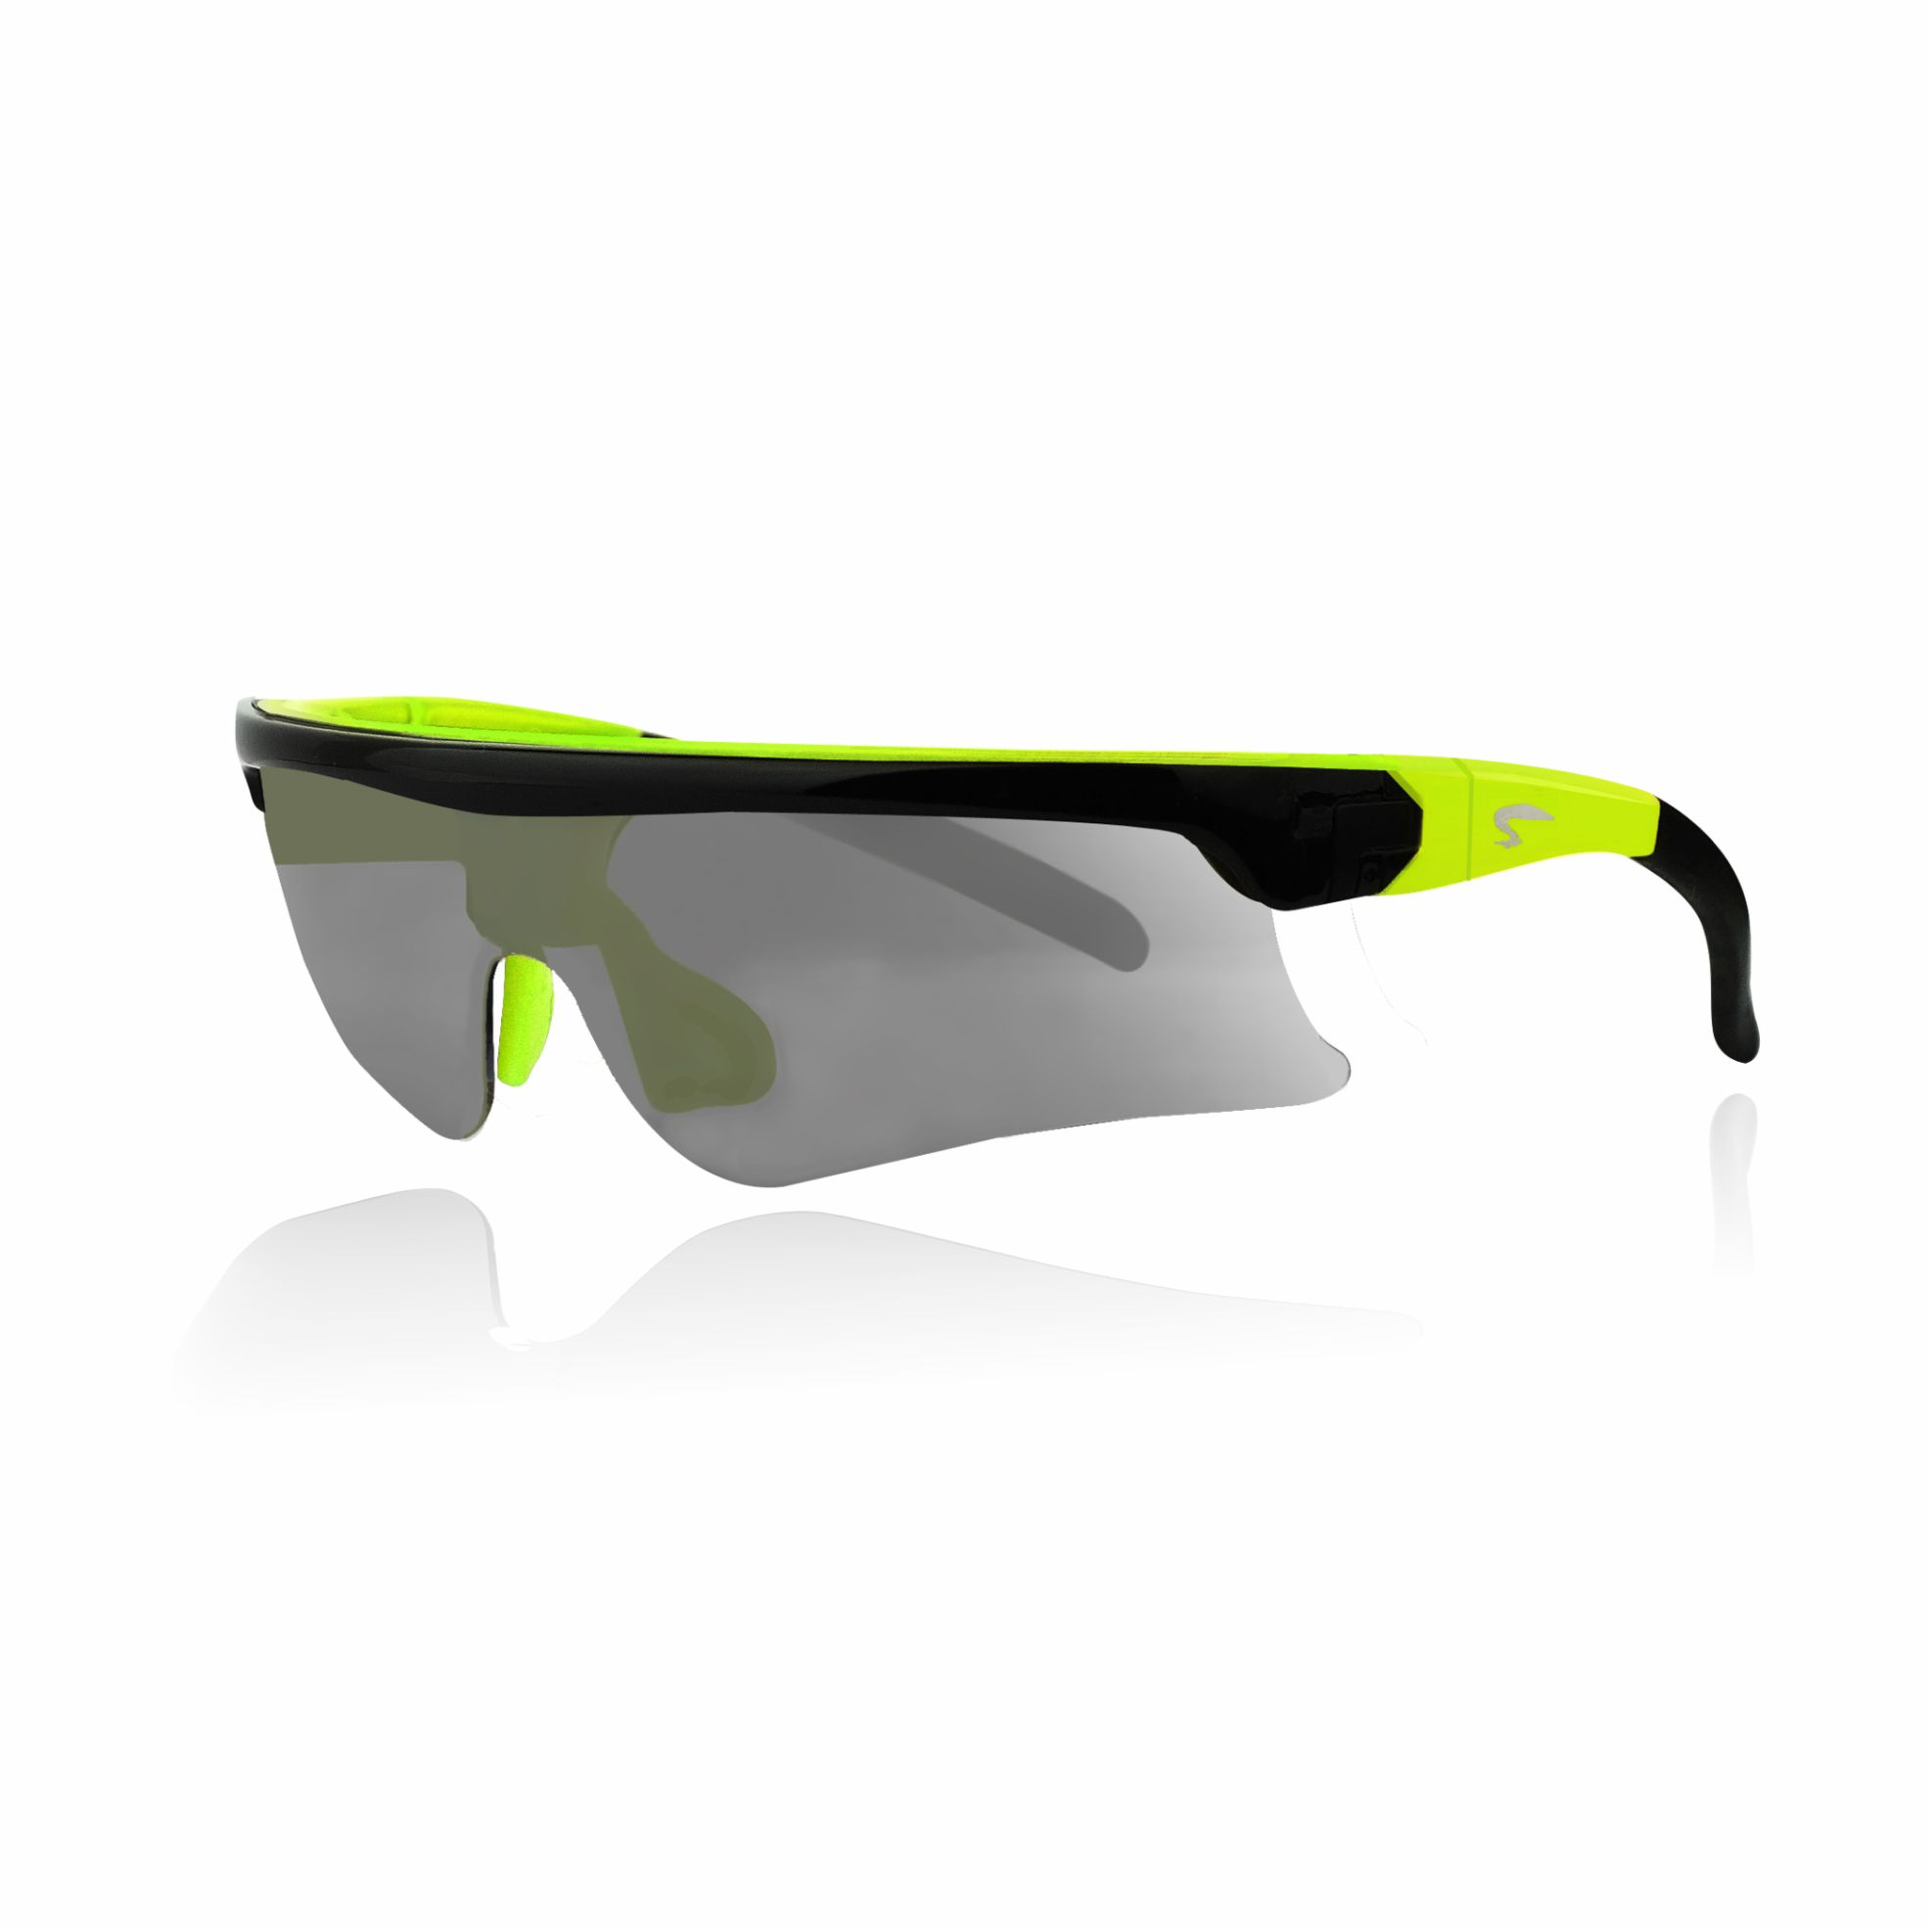 Sacuba Self-Clean Sunglasses